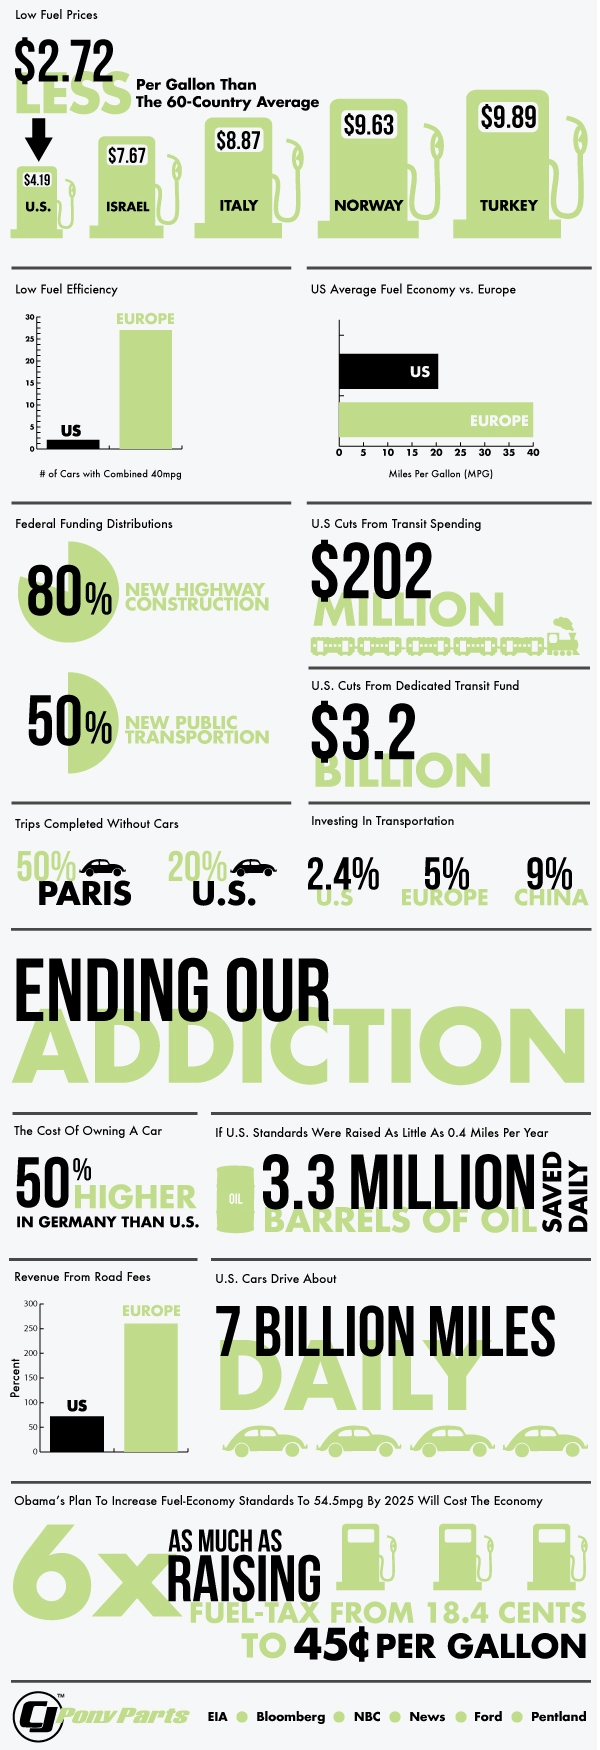 America's Addiction to Oil Infographic (CJPonyParts.com)